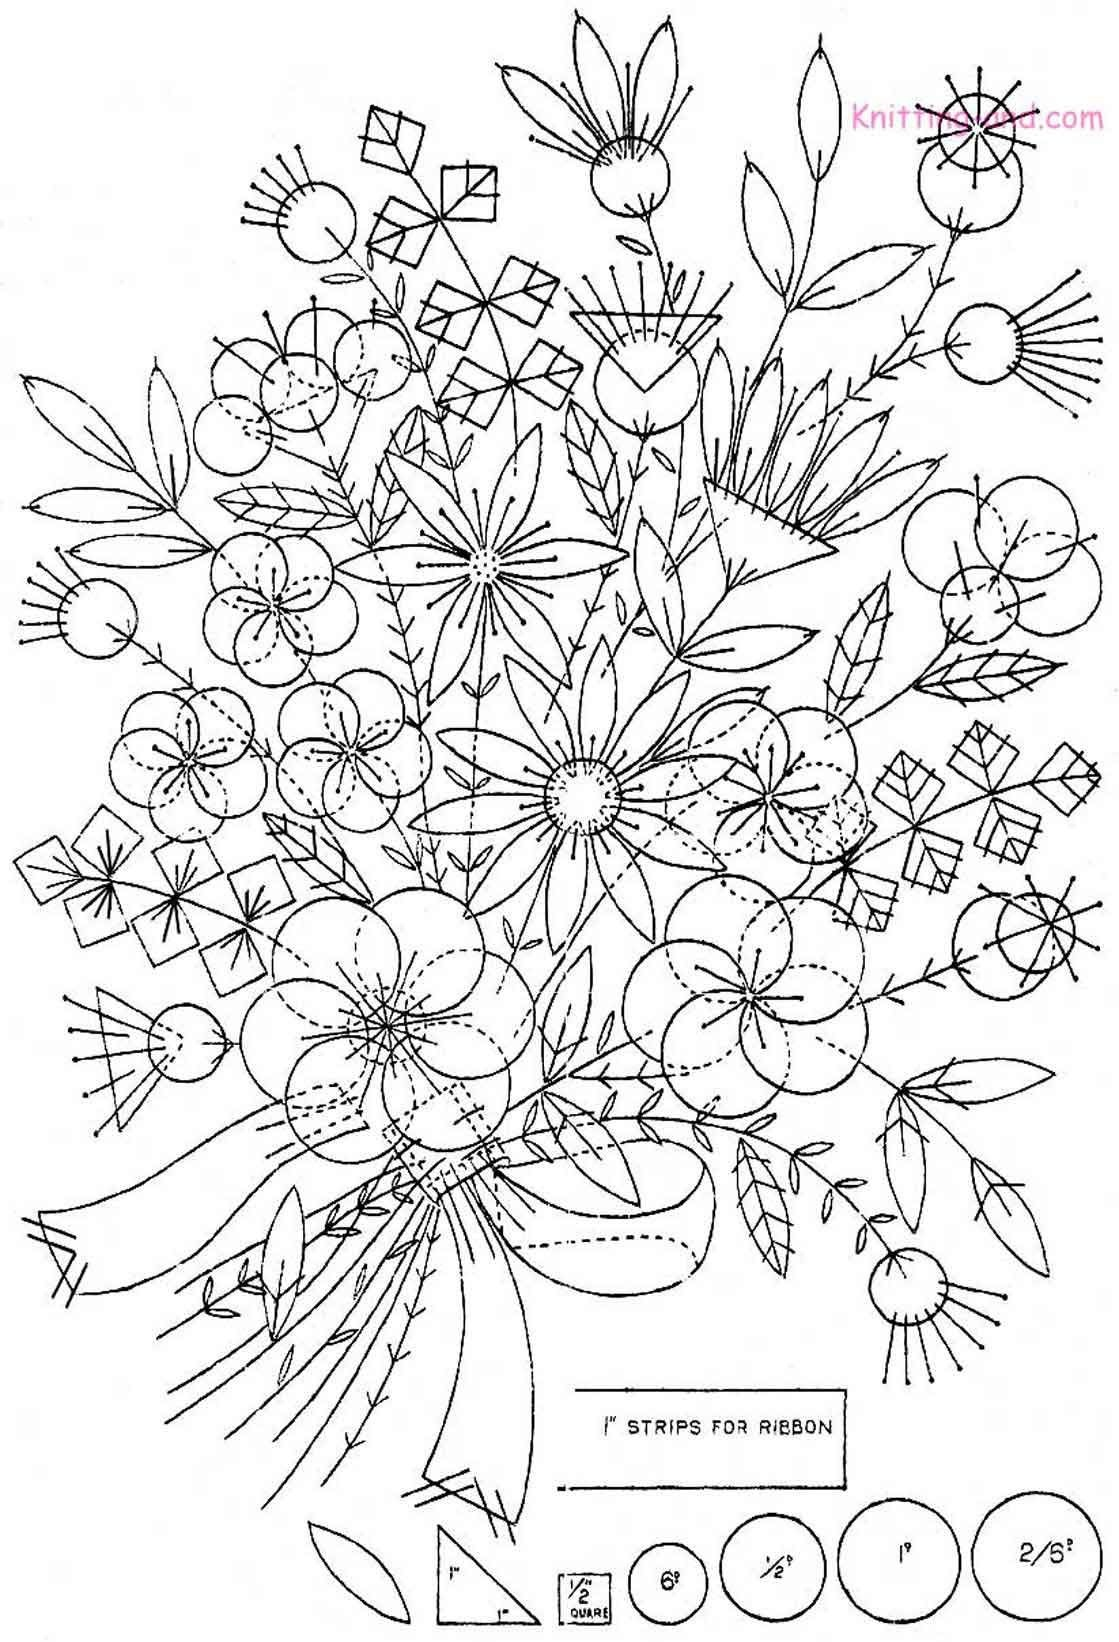 Free Printable Hand Embroidery Designs | Free Embroidery Pattern - Free Printable Embroidery Patterns